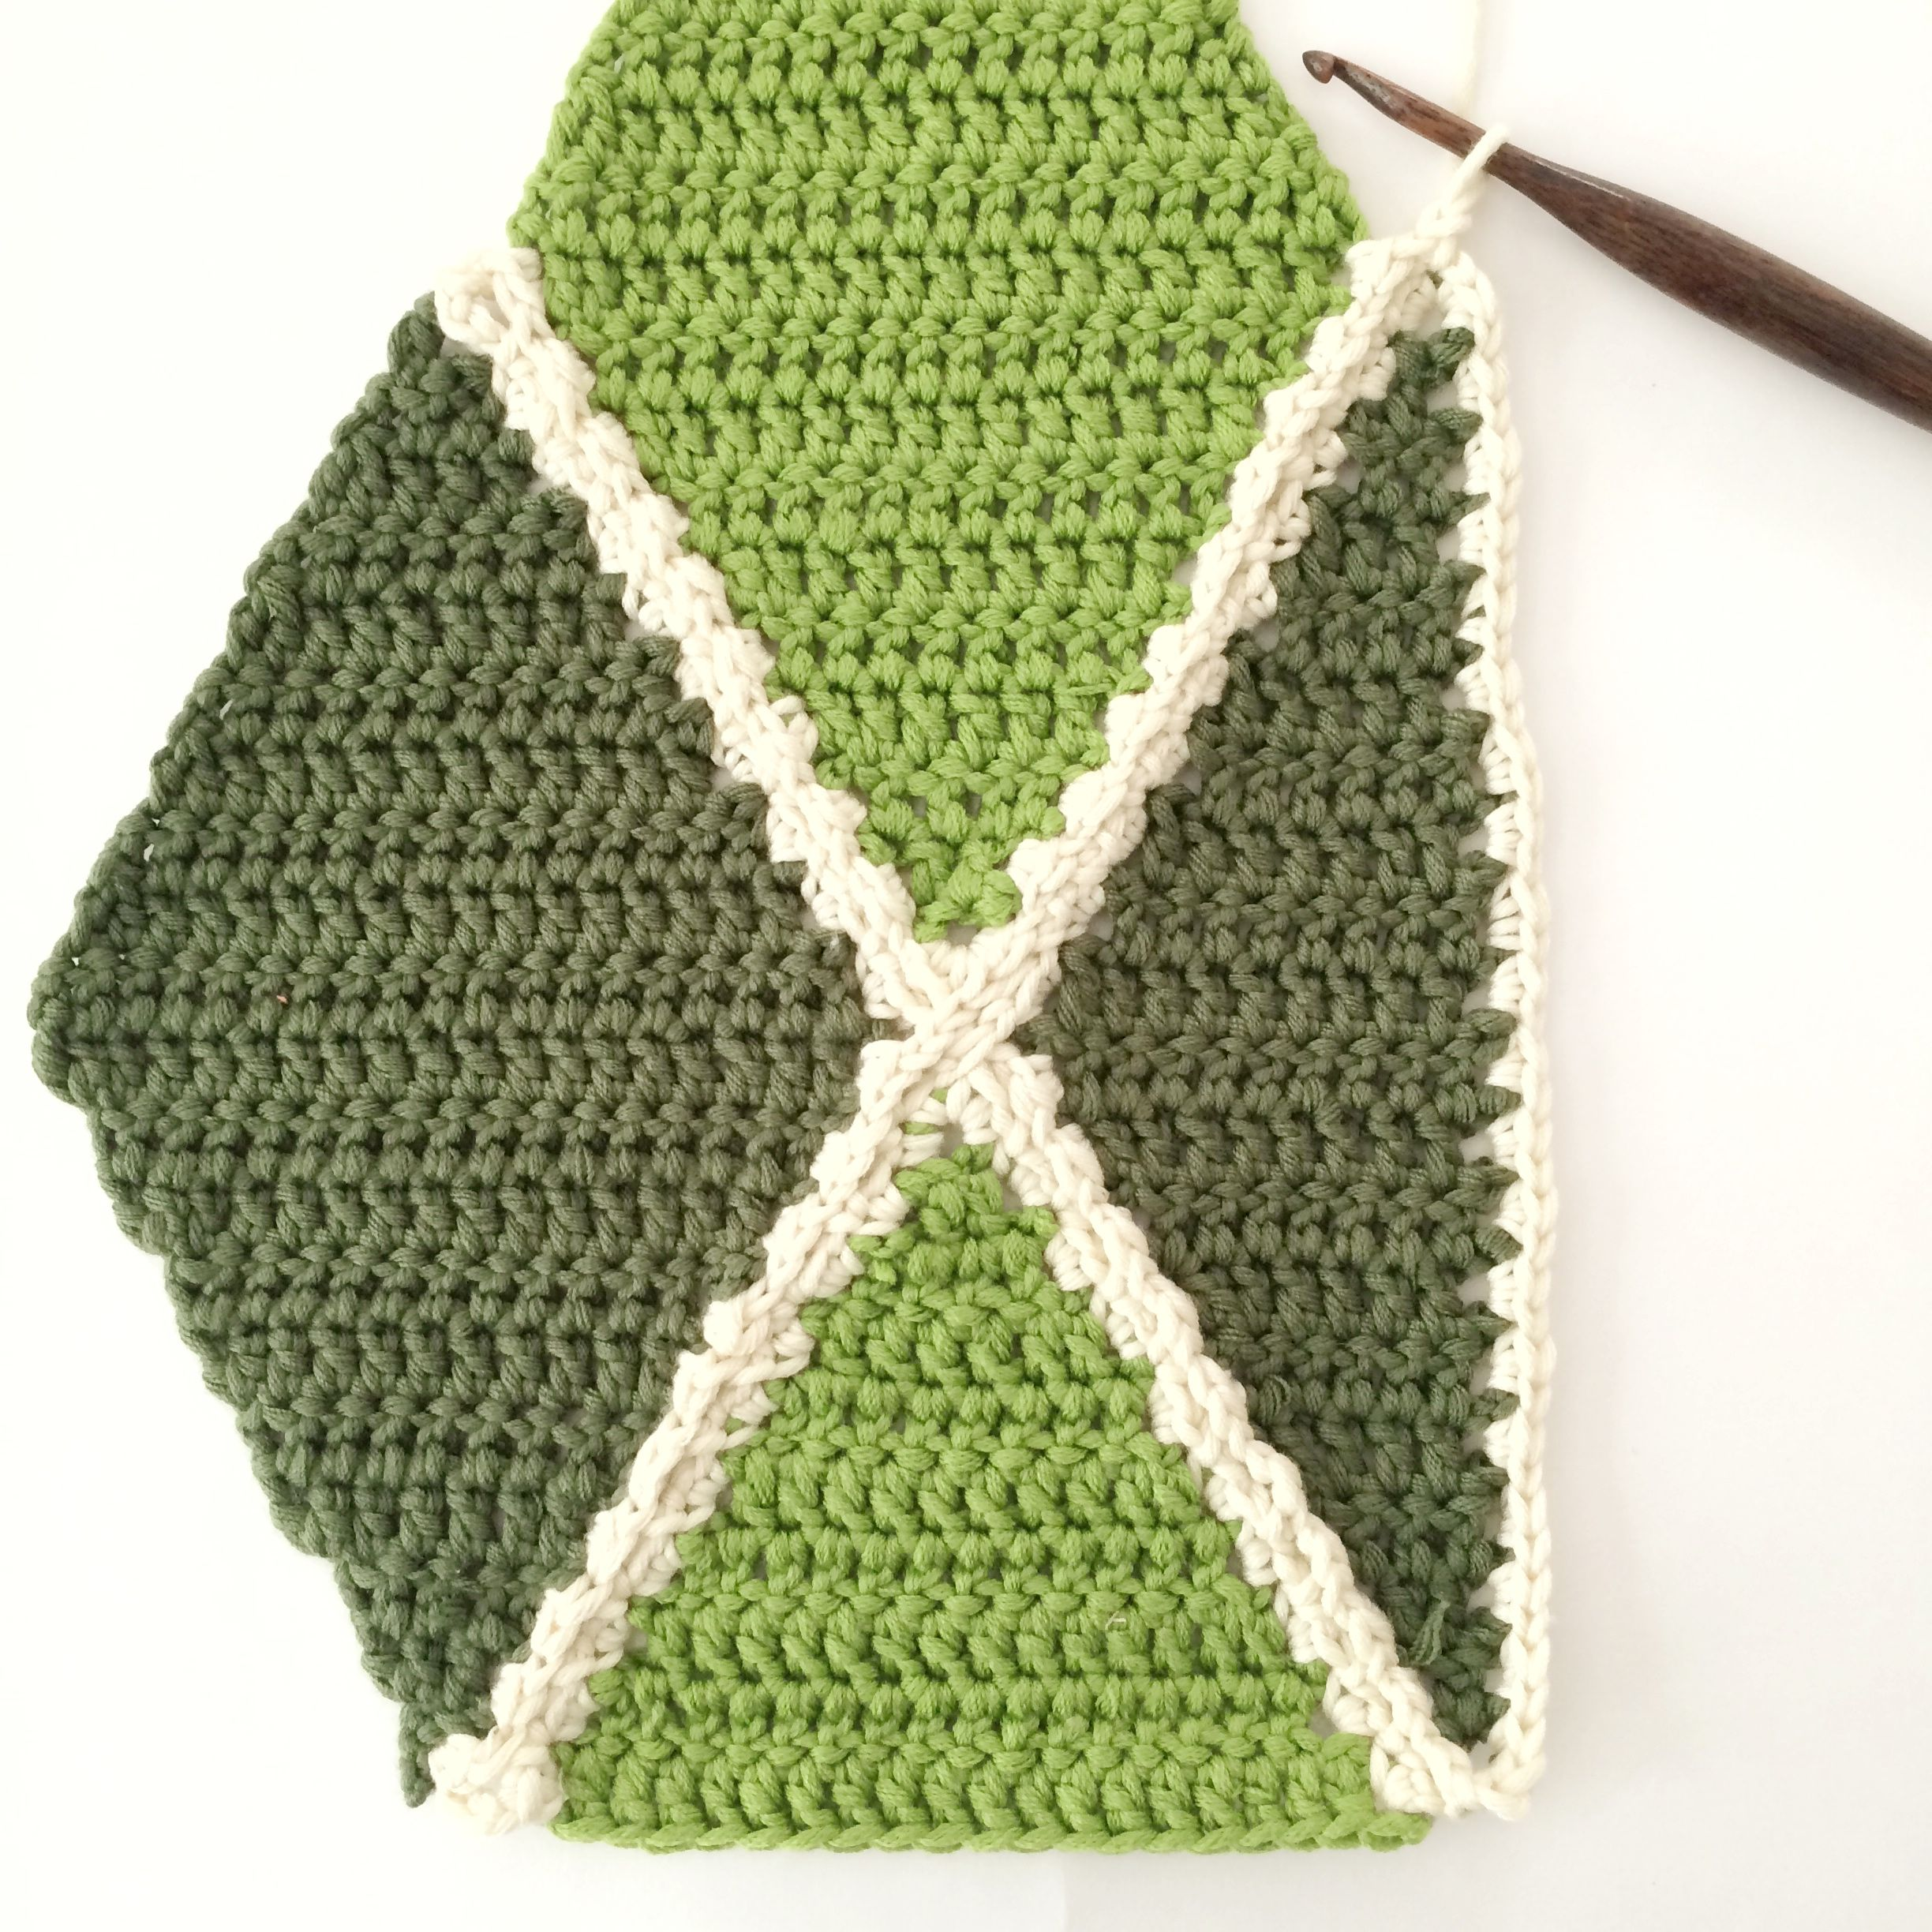 How to Crochet a Diamond Section | Manta, Lectura de y Círculos